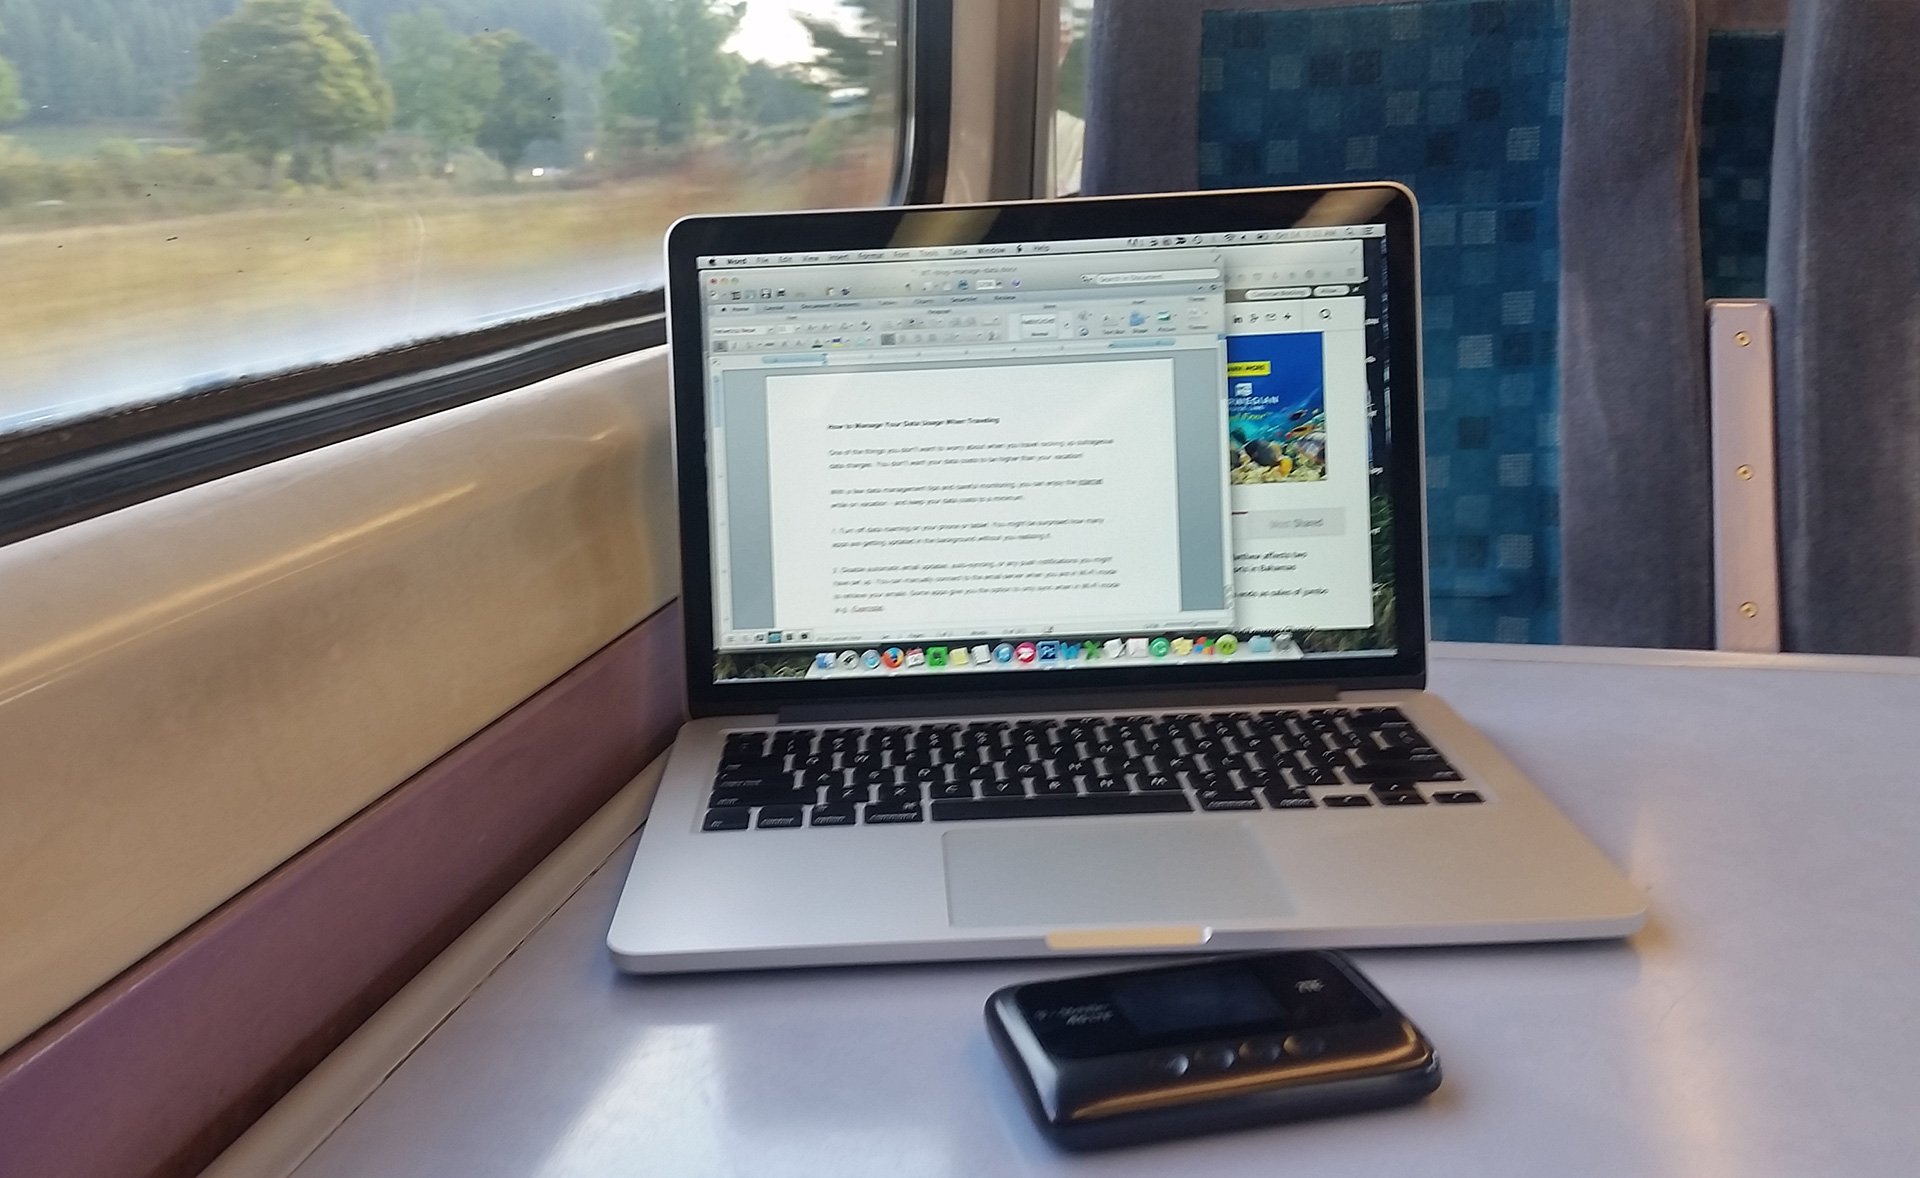 Working on train with laptop and pocket wifi device